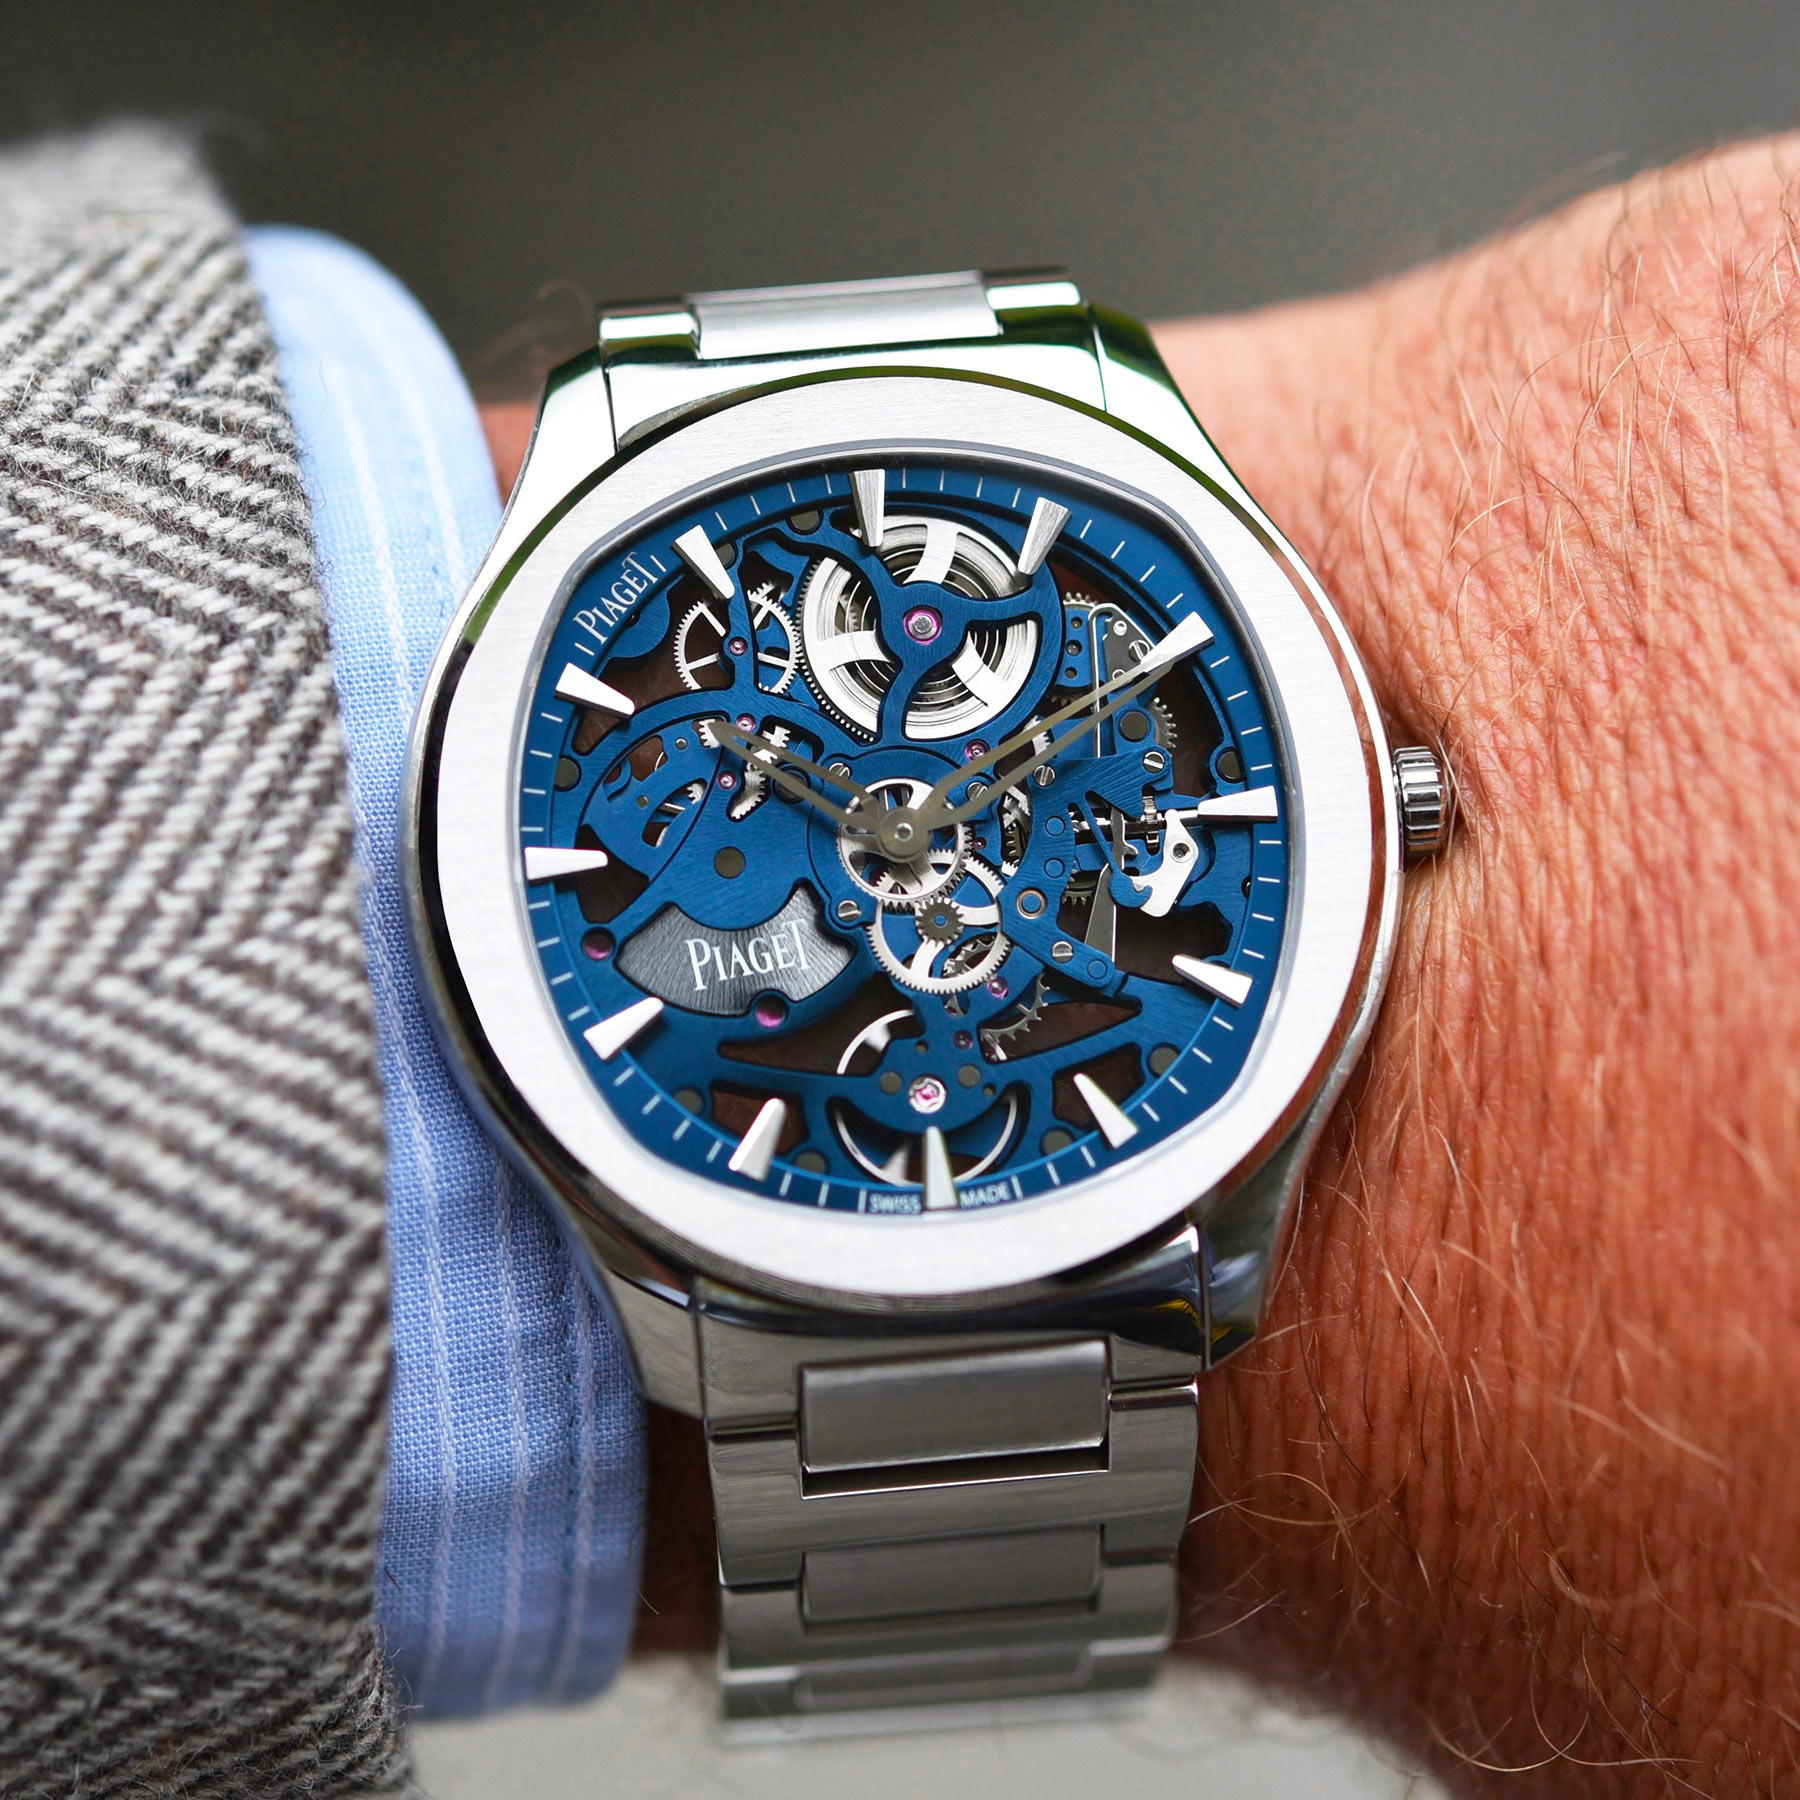 Piaget Polo Skeleton in-depth review video - 1